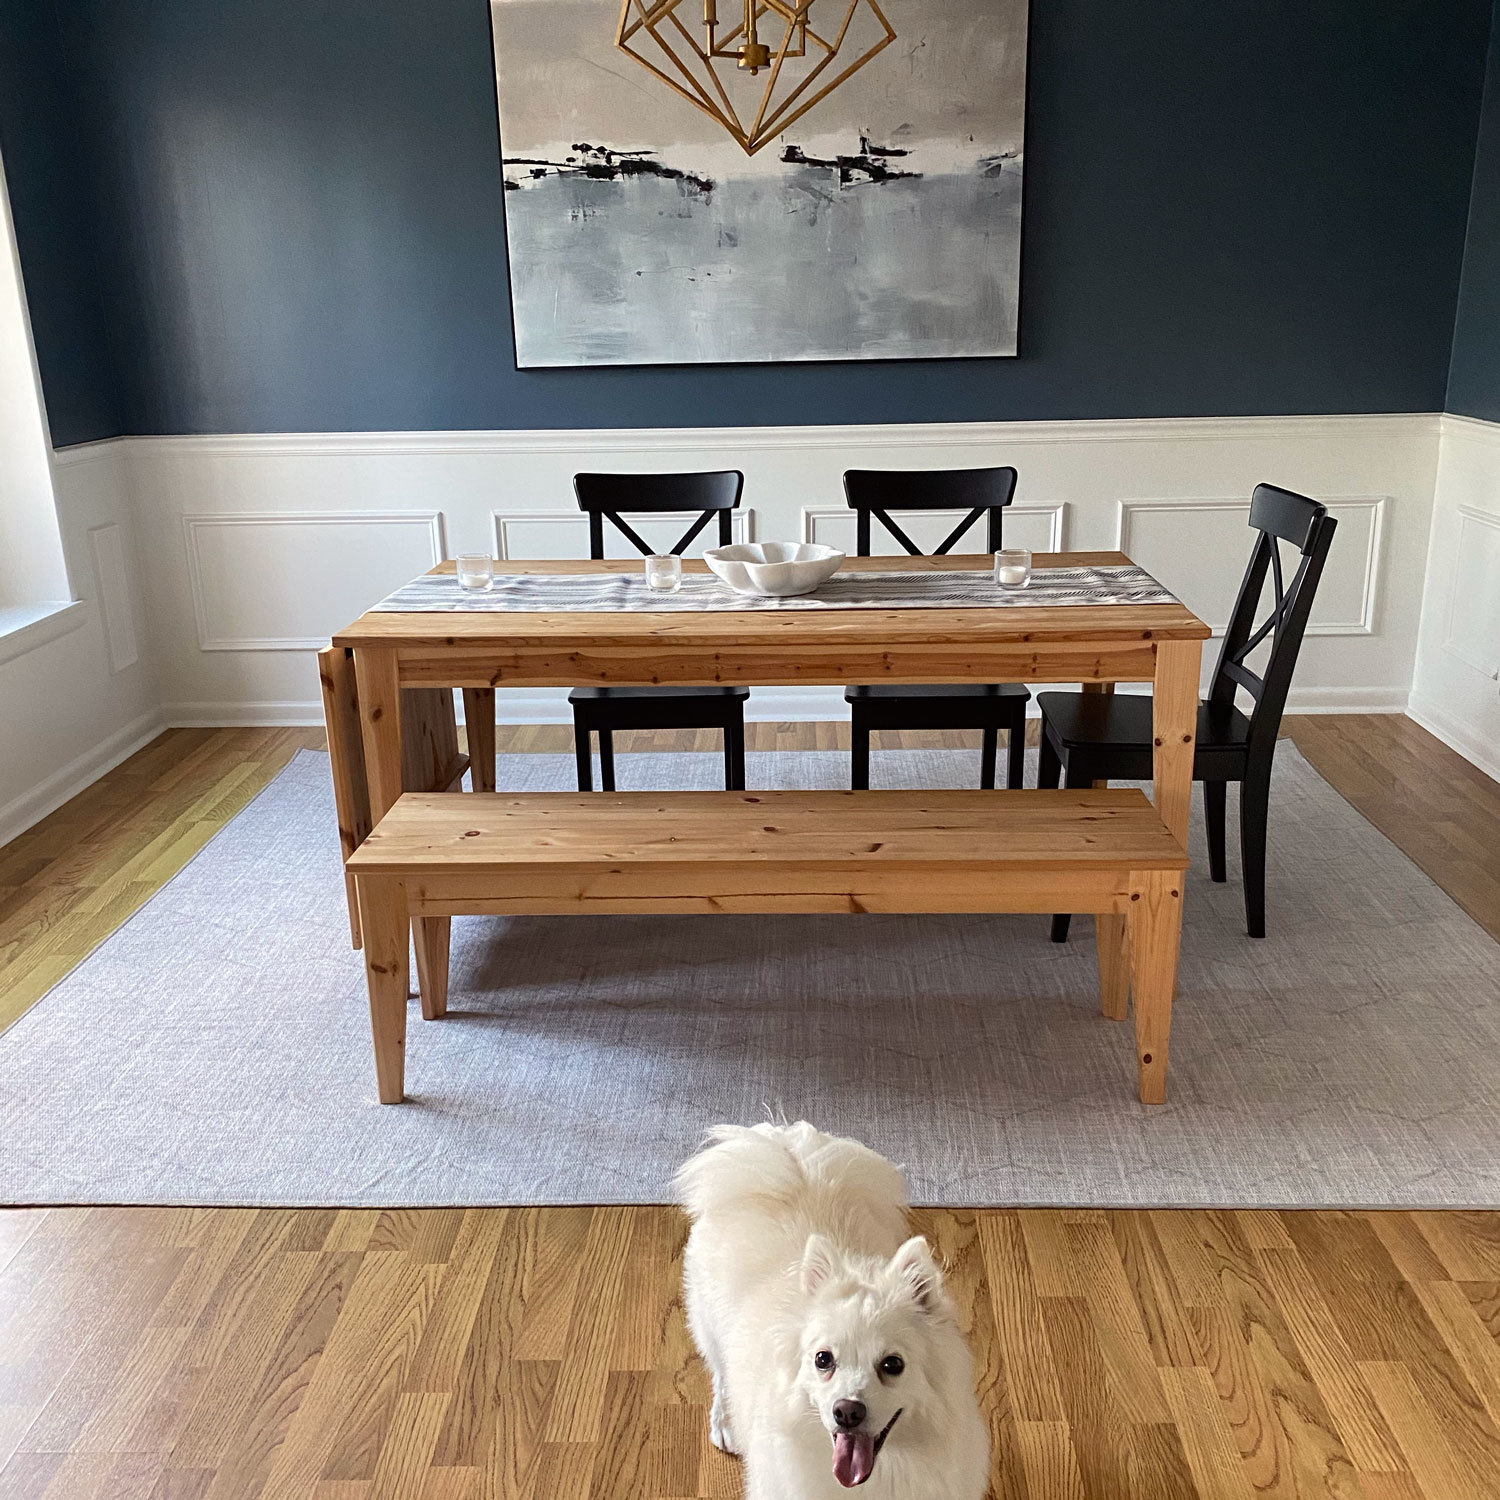 washable rug in a dining room under a dining room table